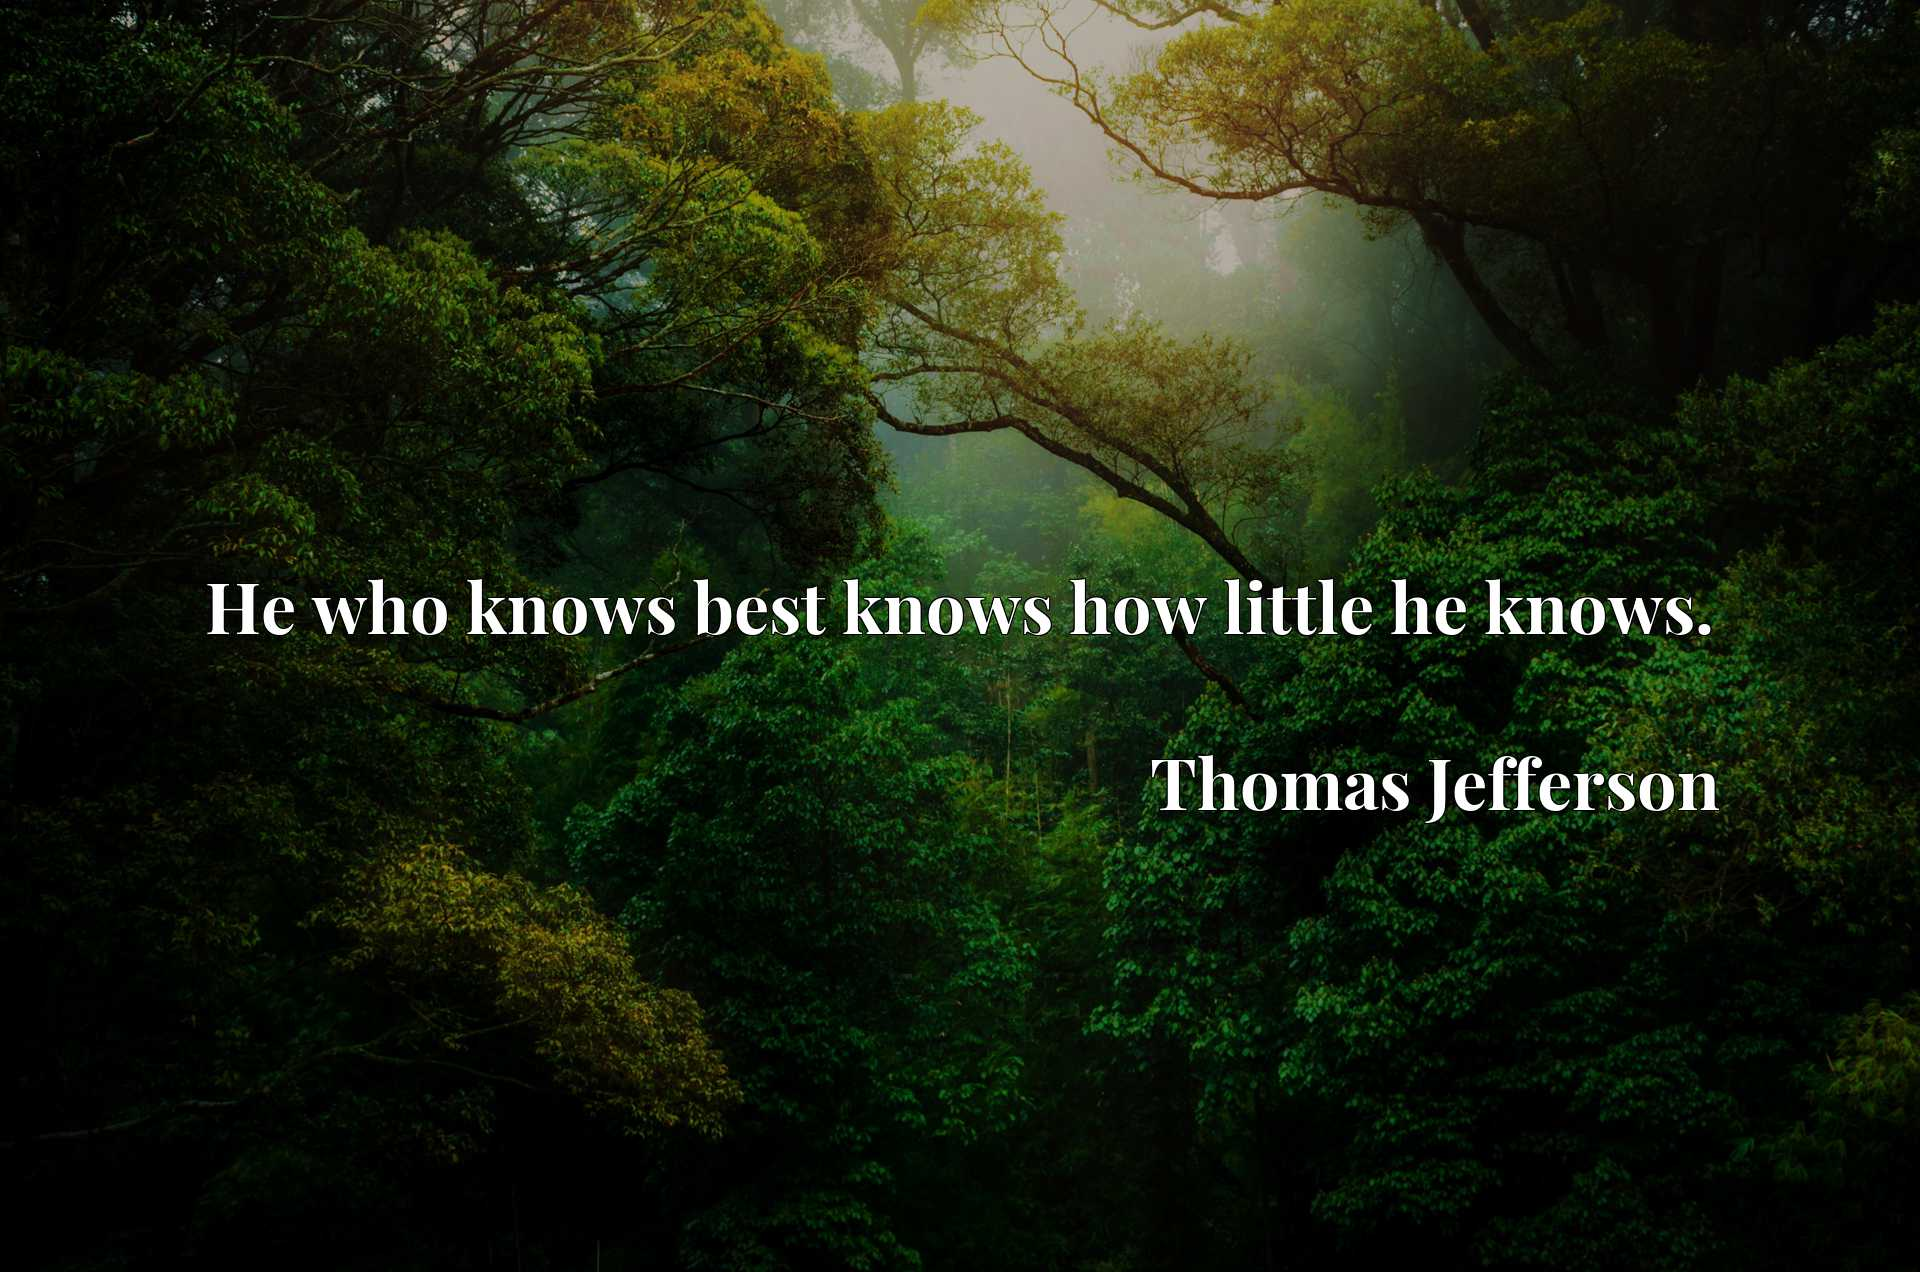 He who knows best knows how little he knows.